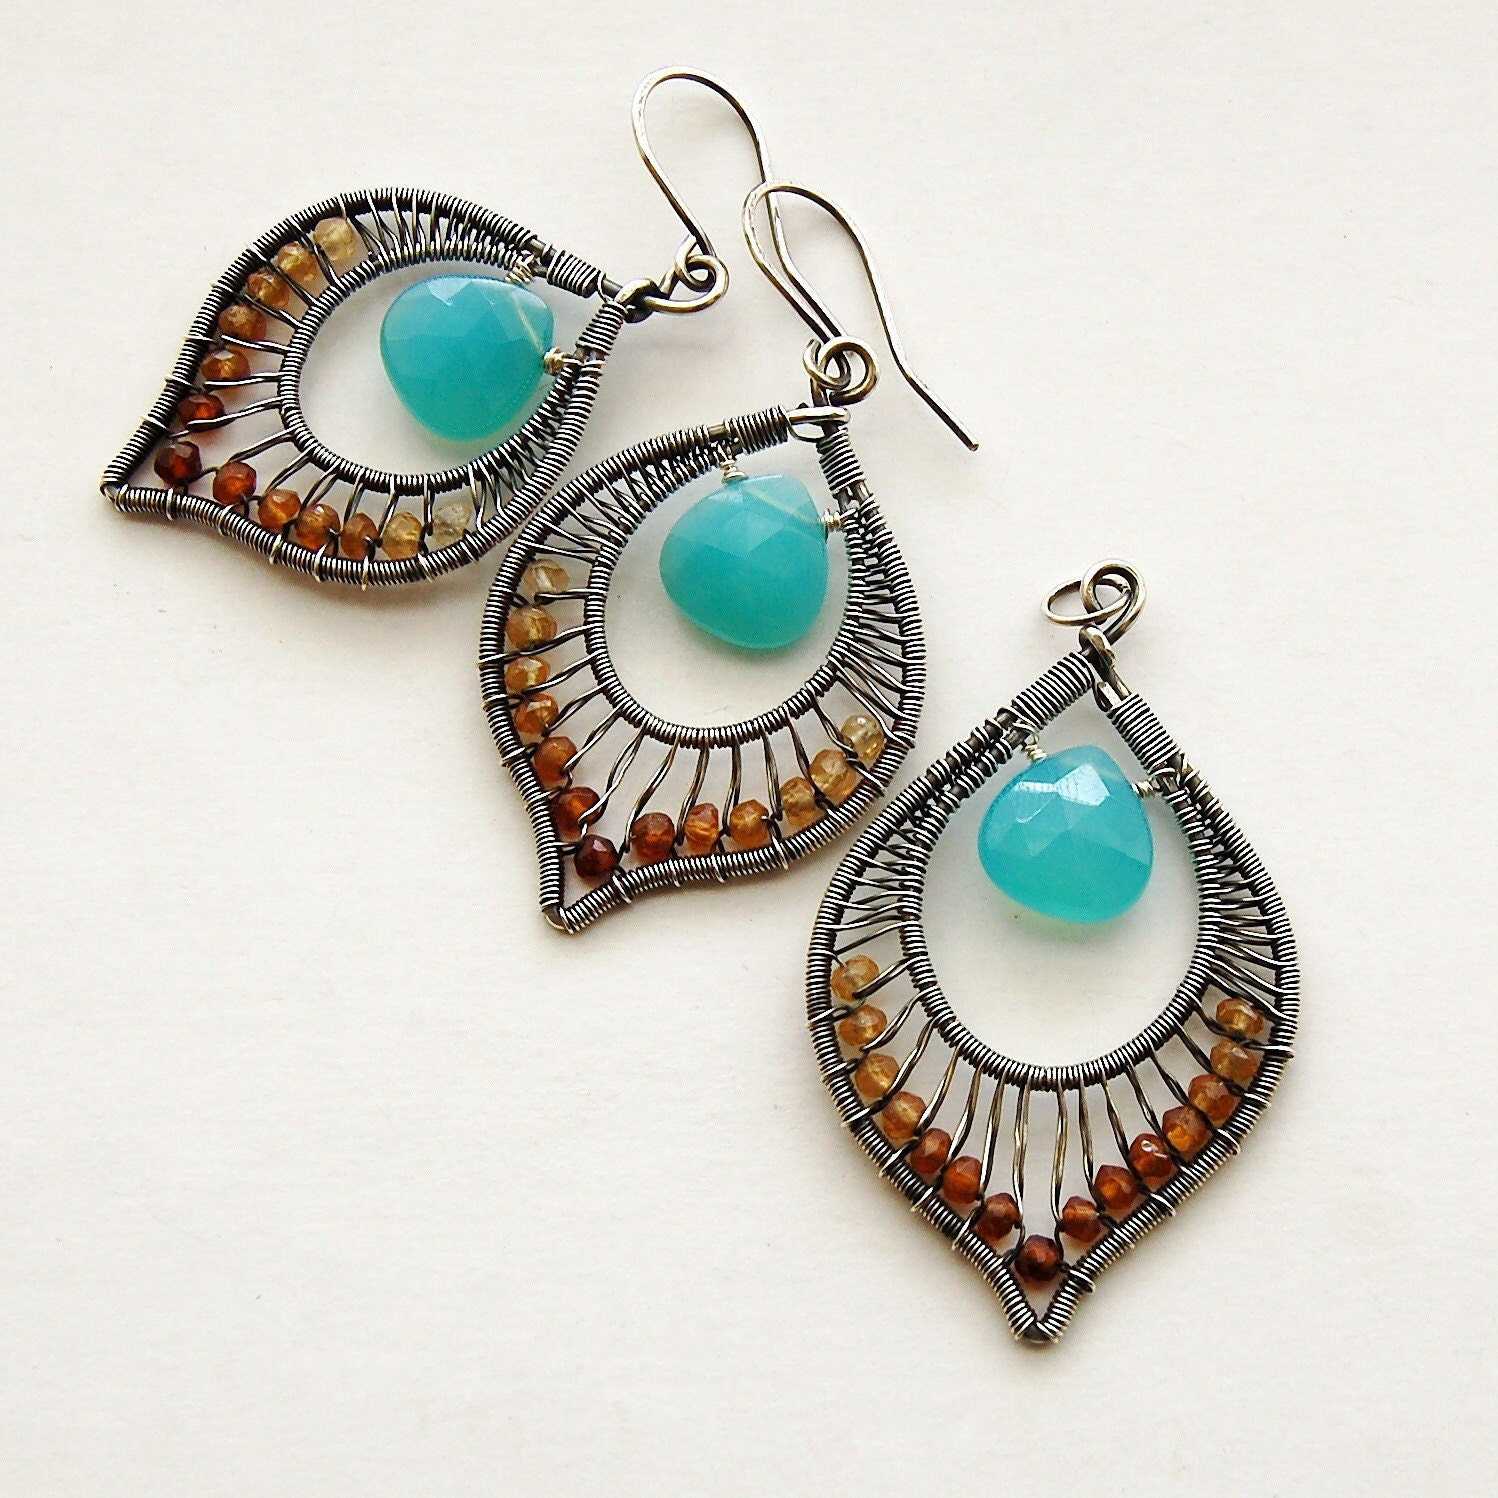 AAA Peruvian Blue Chalcedony and Hessonite Garnet Wire Wrapped Earrings and Pendant Set in Silver